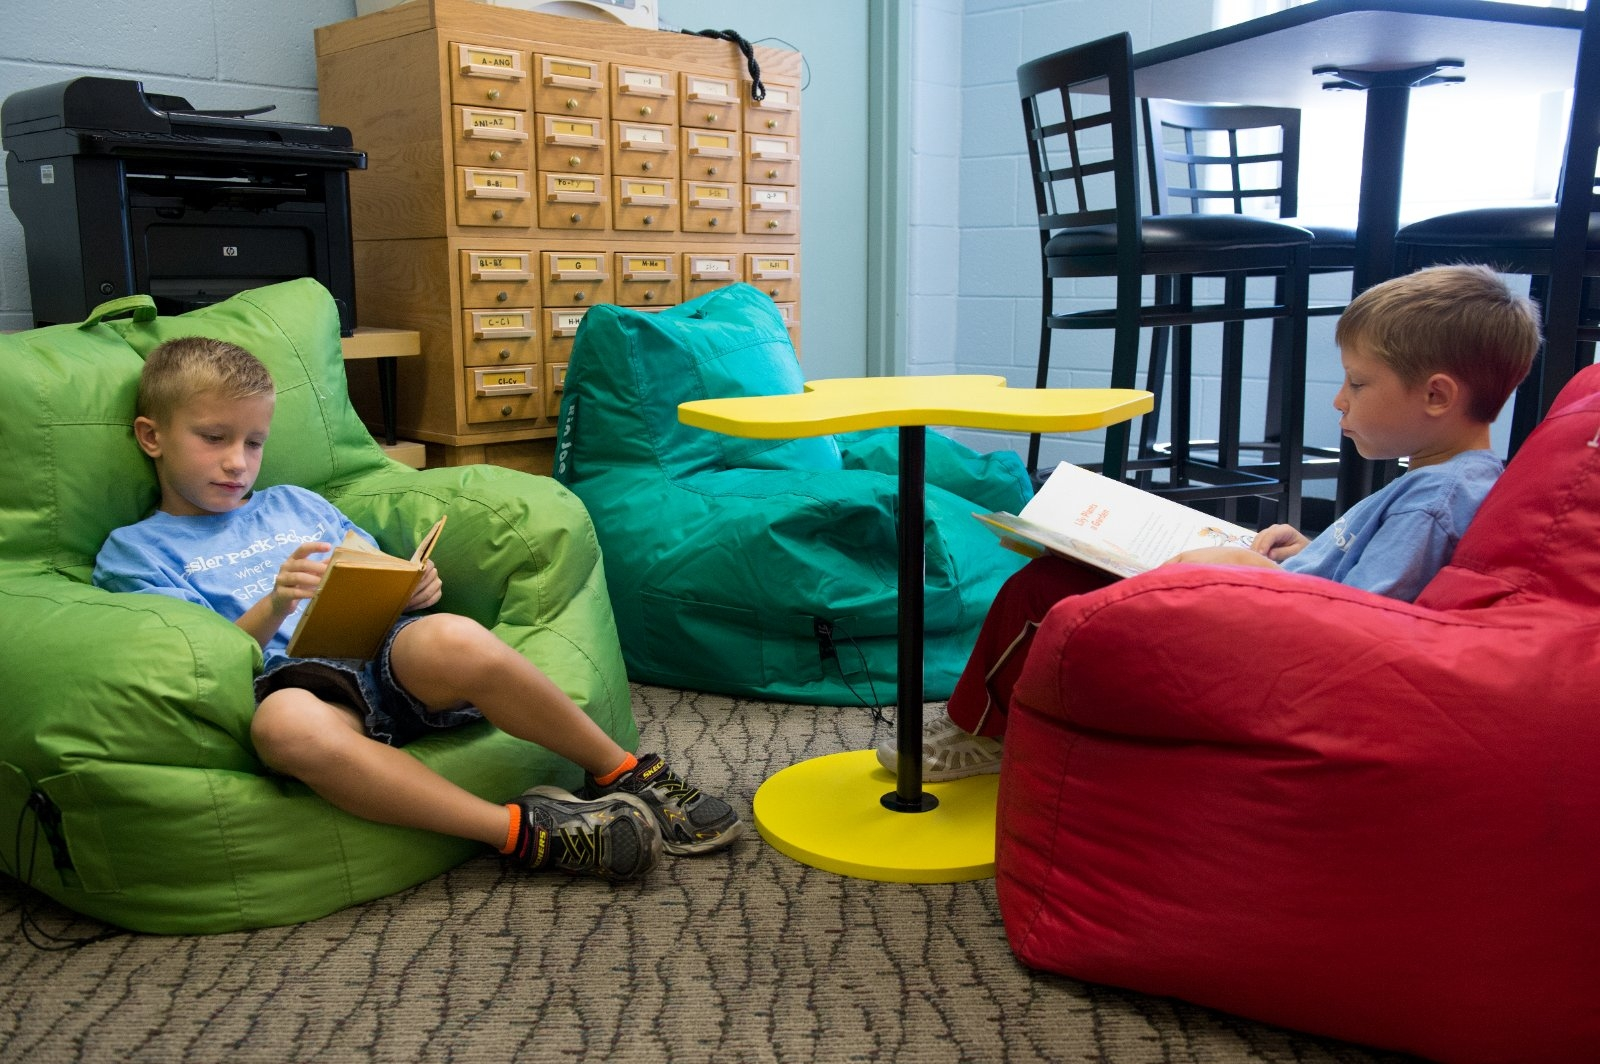 Students sit in bean bag chairs and read.